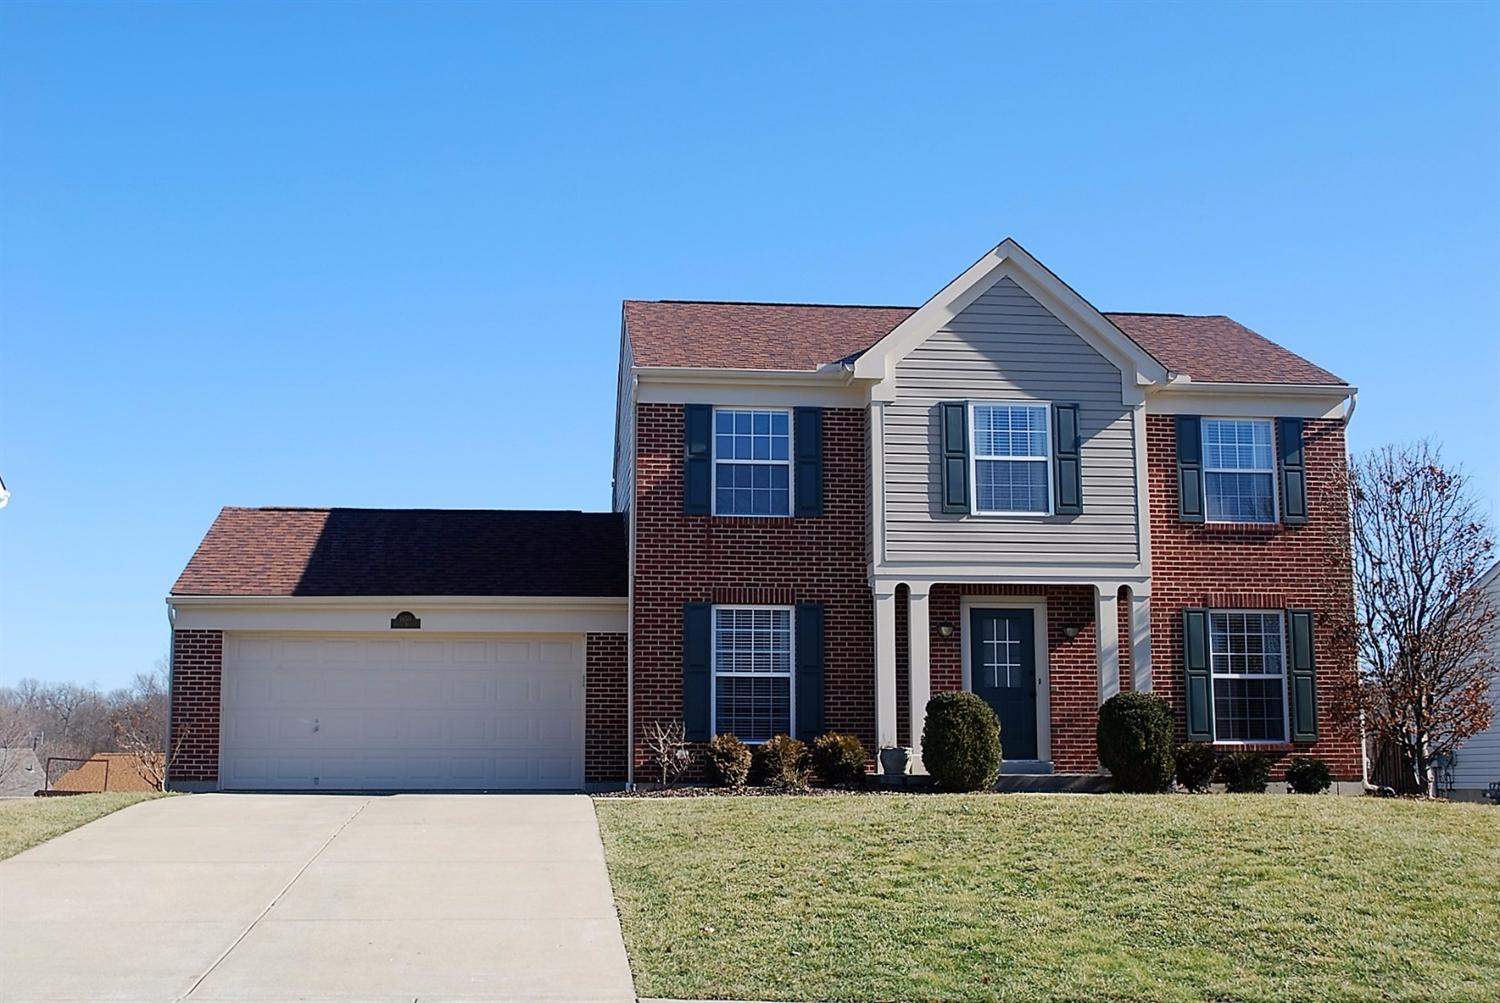 Photo 1 for 1650 Cherry Blossom Ct Hebron, KY 41048